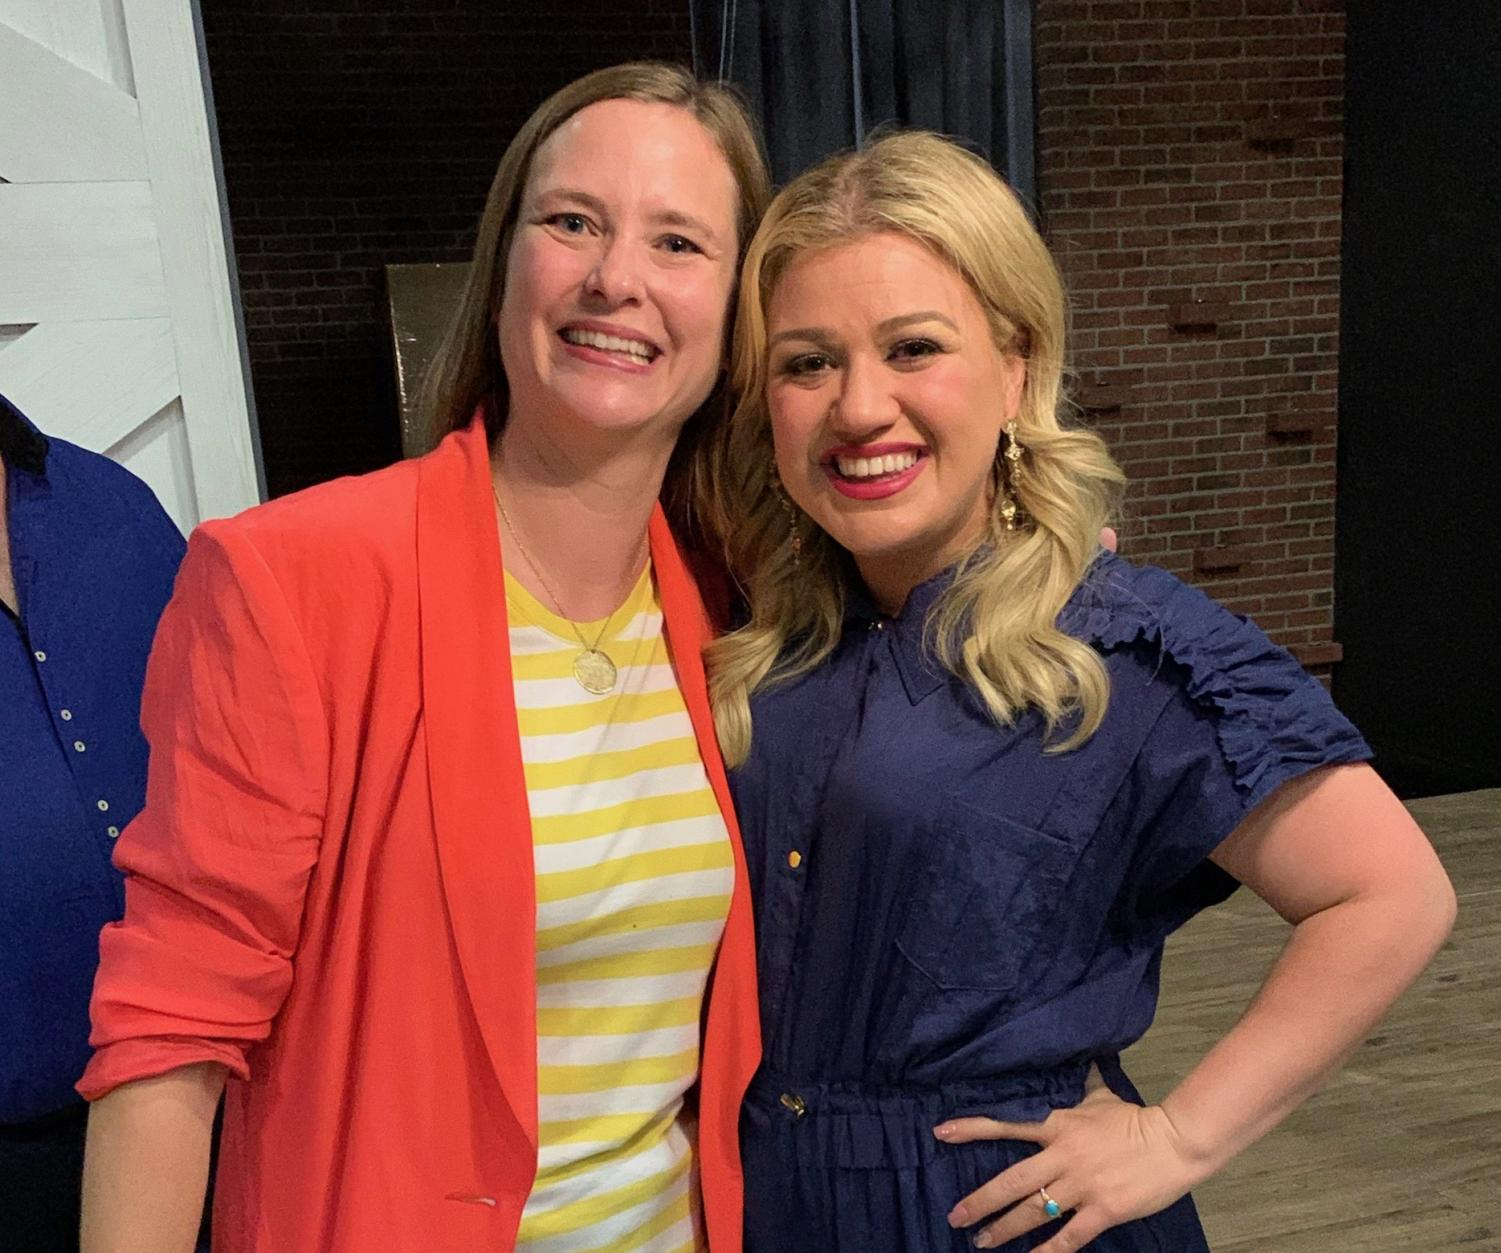 Mrs. Peters with Kelly Clarkson